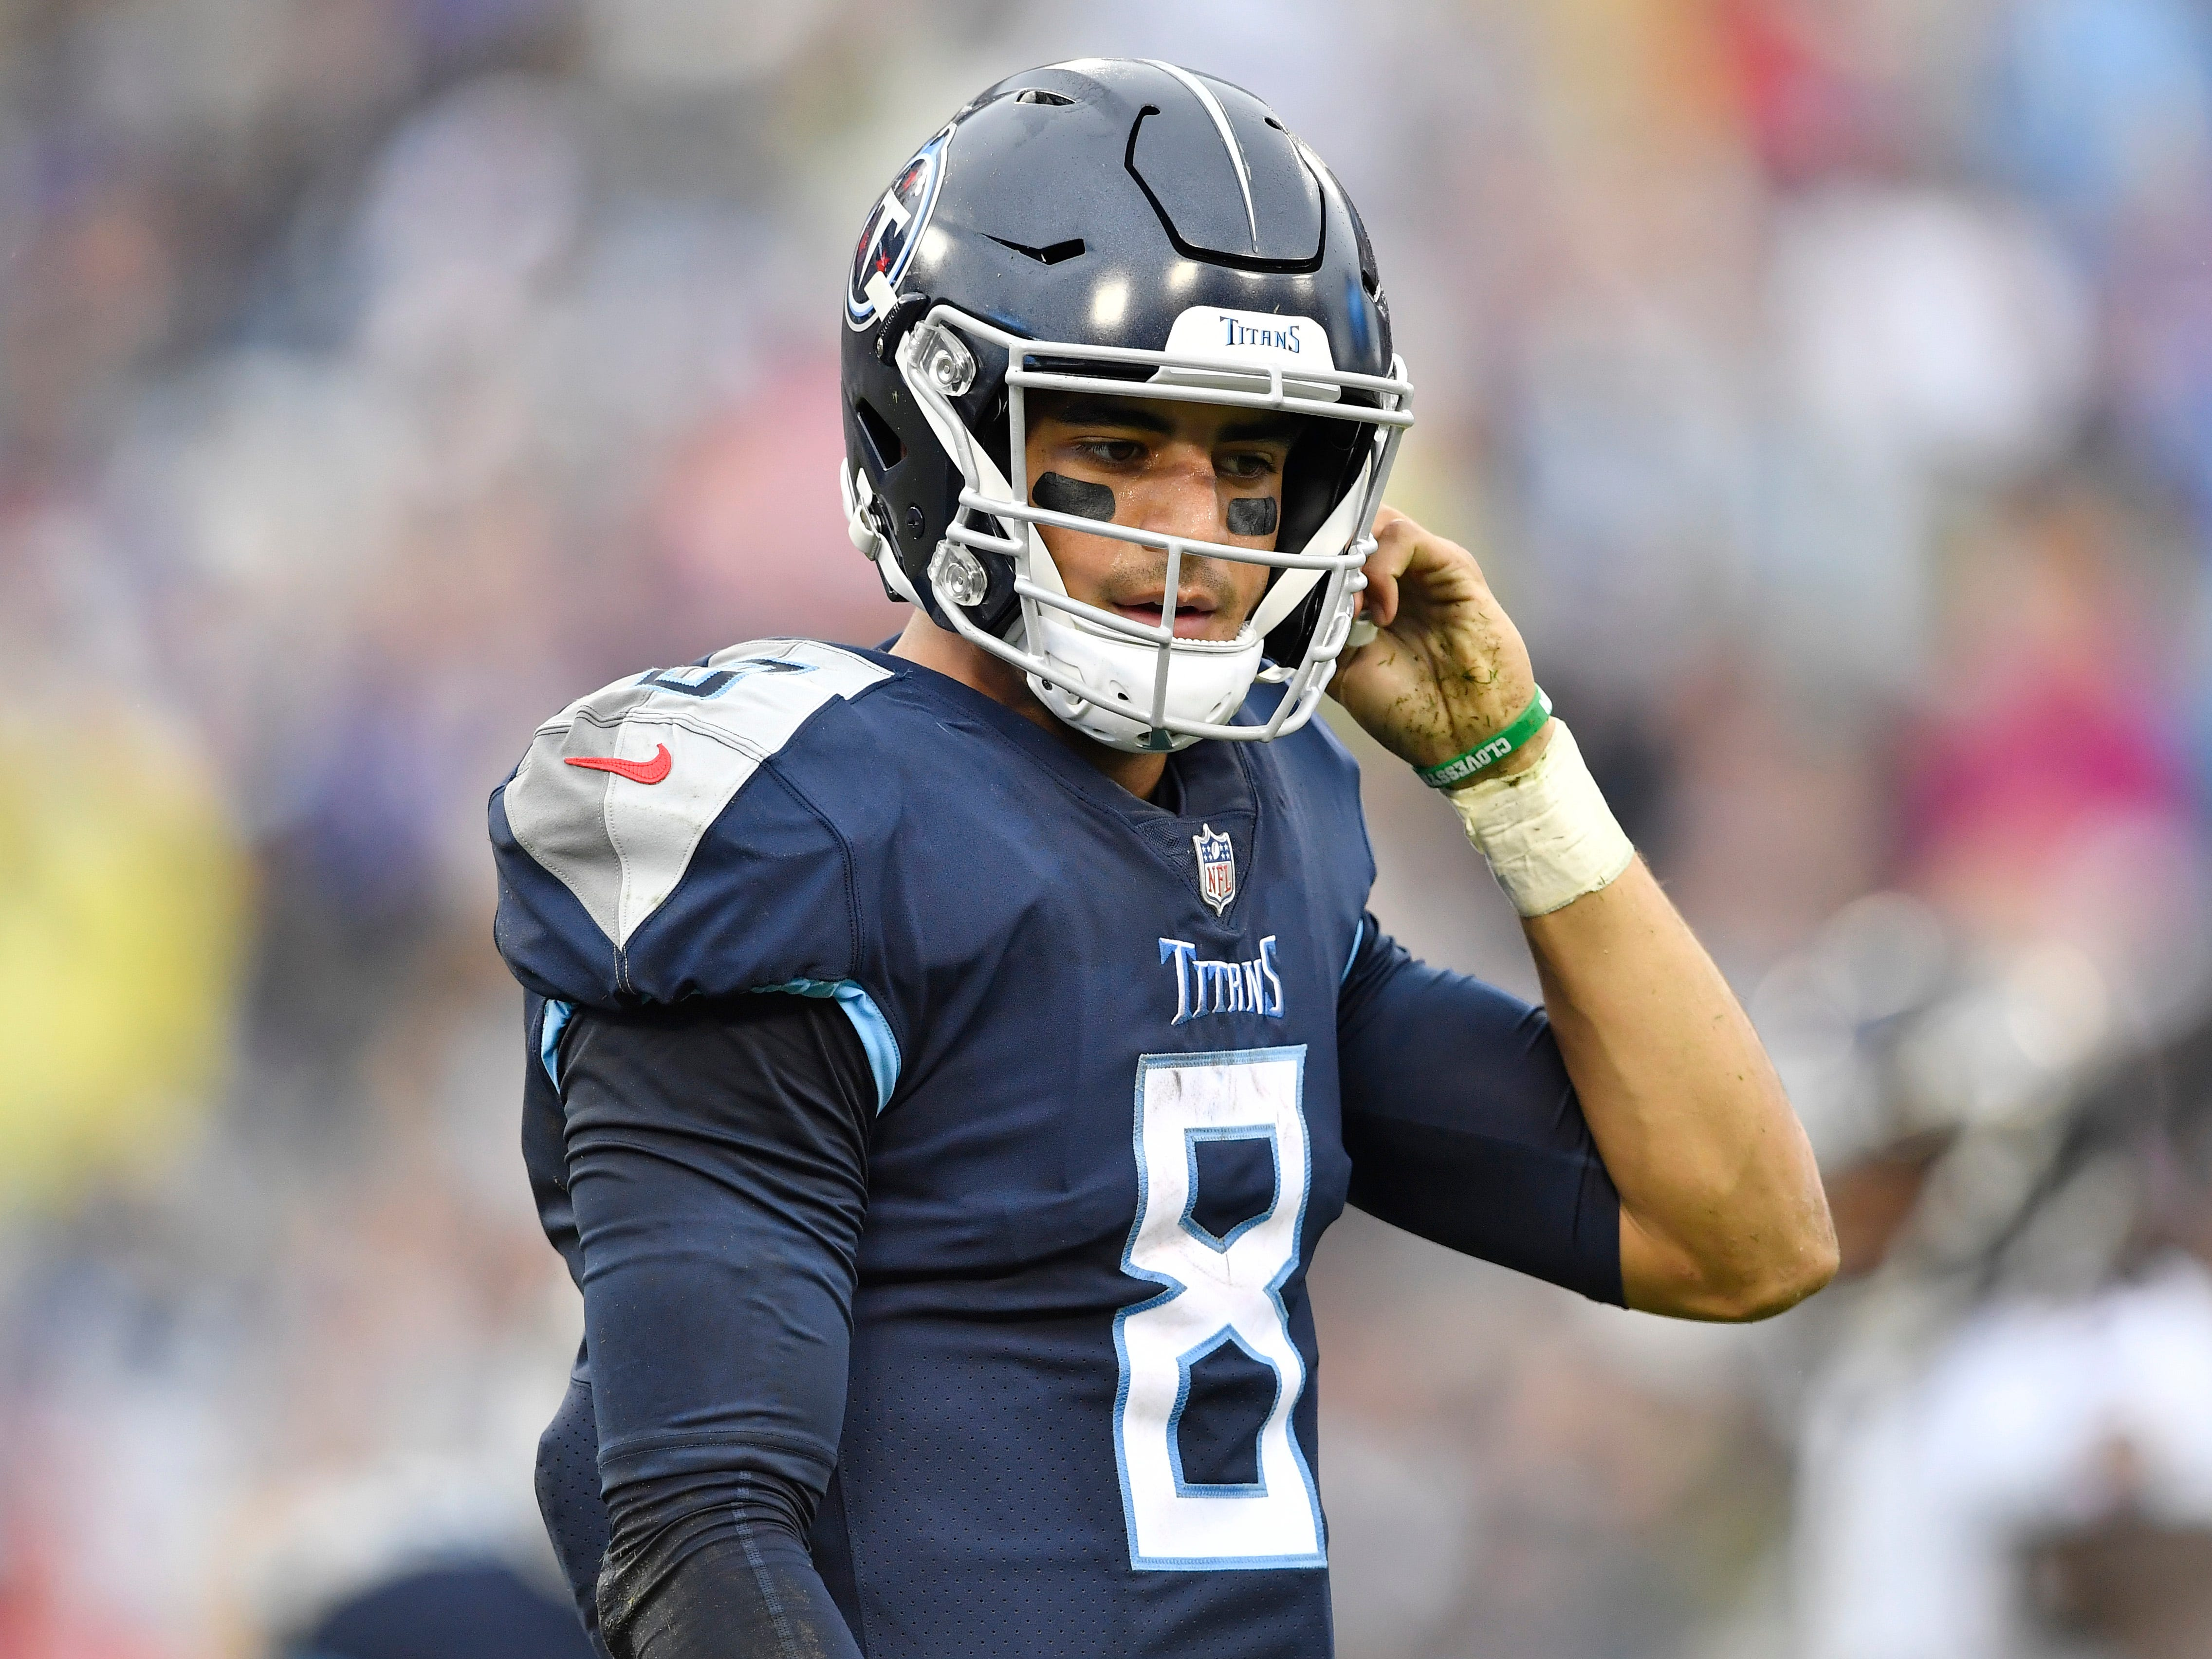 Titans quarterback Marcus Mariota (8) walks off the field after being sacked in the second quarter at Nissan Stadium Sunday, Oct. 14, 2018, in Nashville, Tenn.